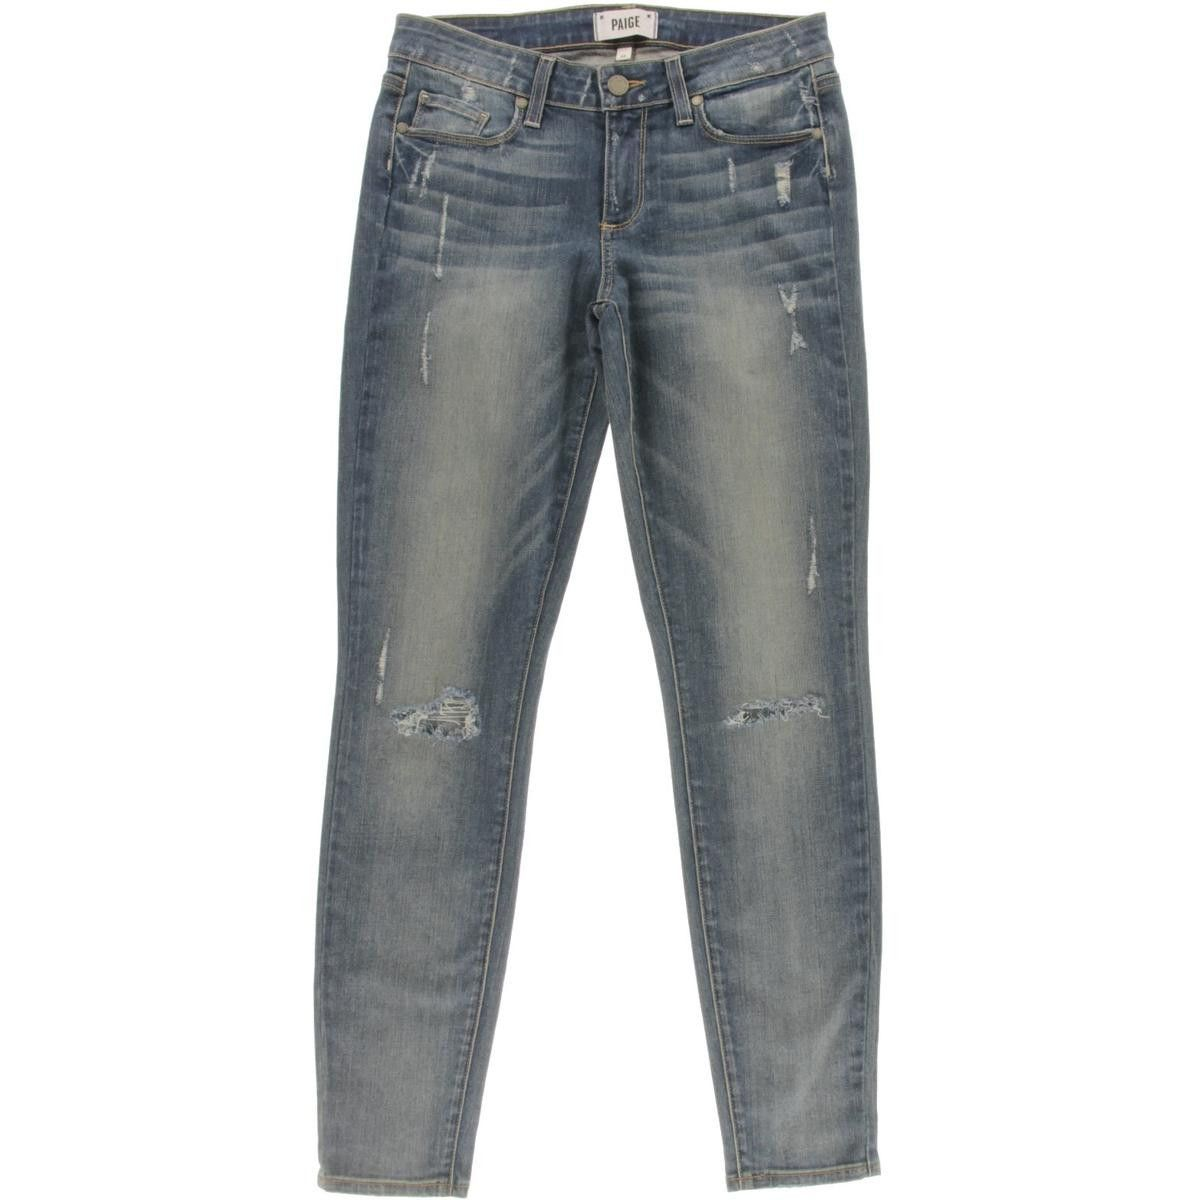 Paige Womens Ultra Skinny Destroyed Jeans